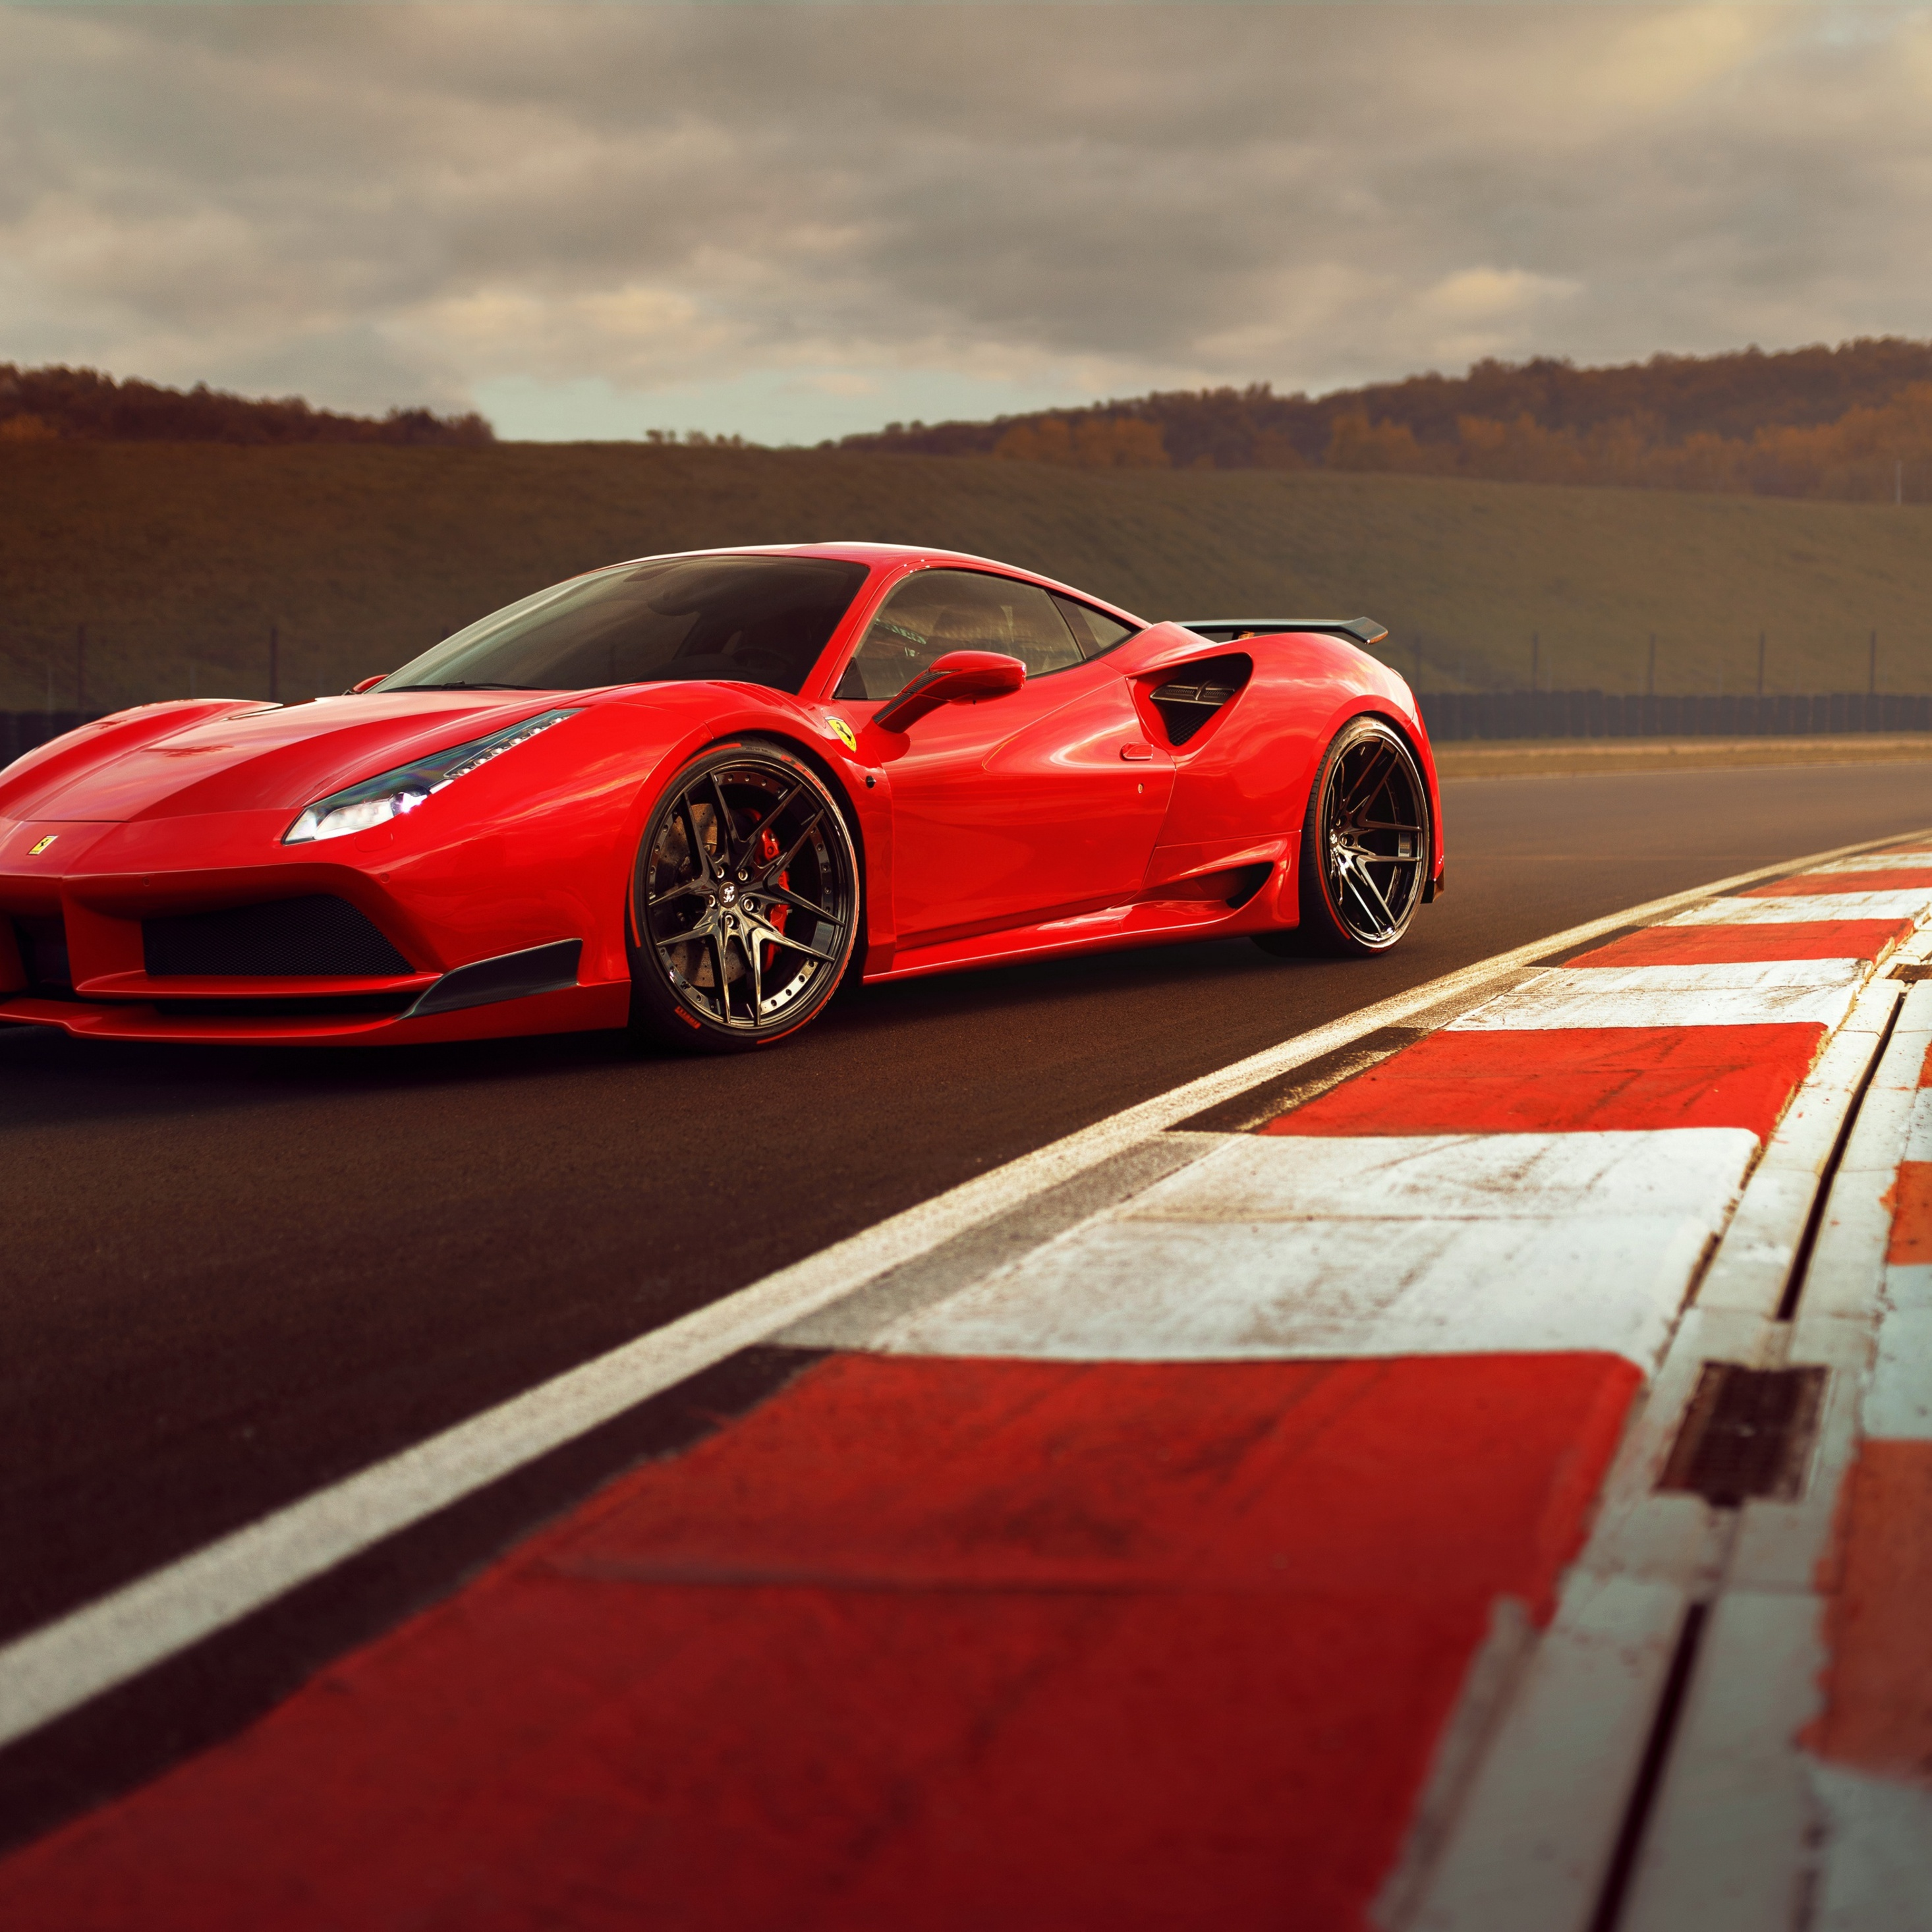 2932x2932 Ferrari 488 Gtb 4k Ipad Pro Retina Display HD 4k